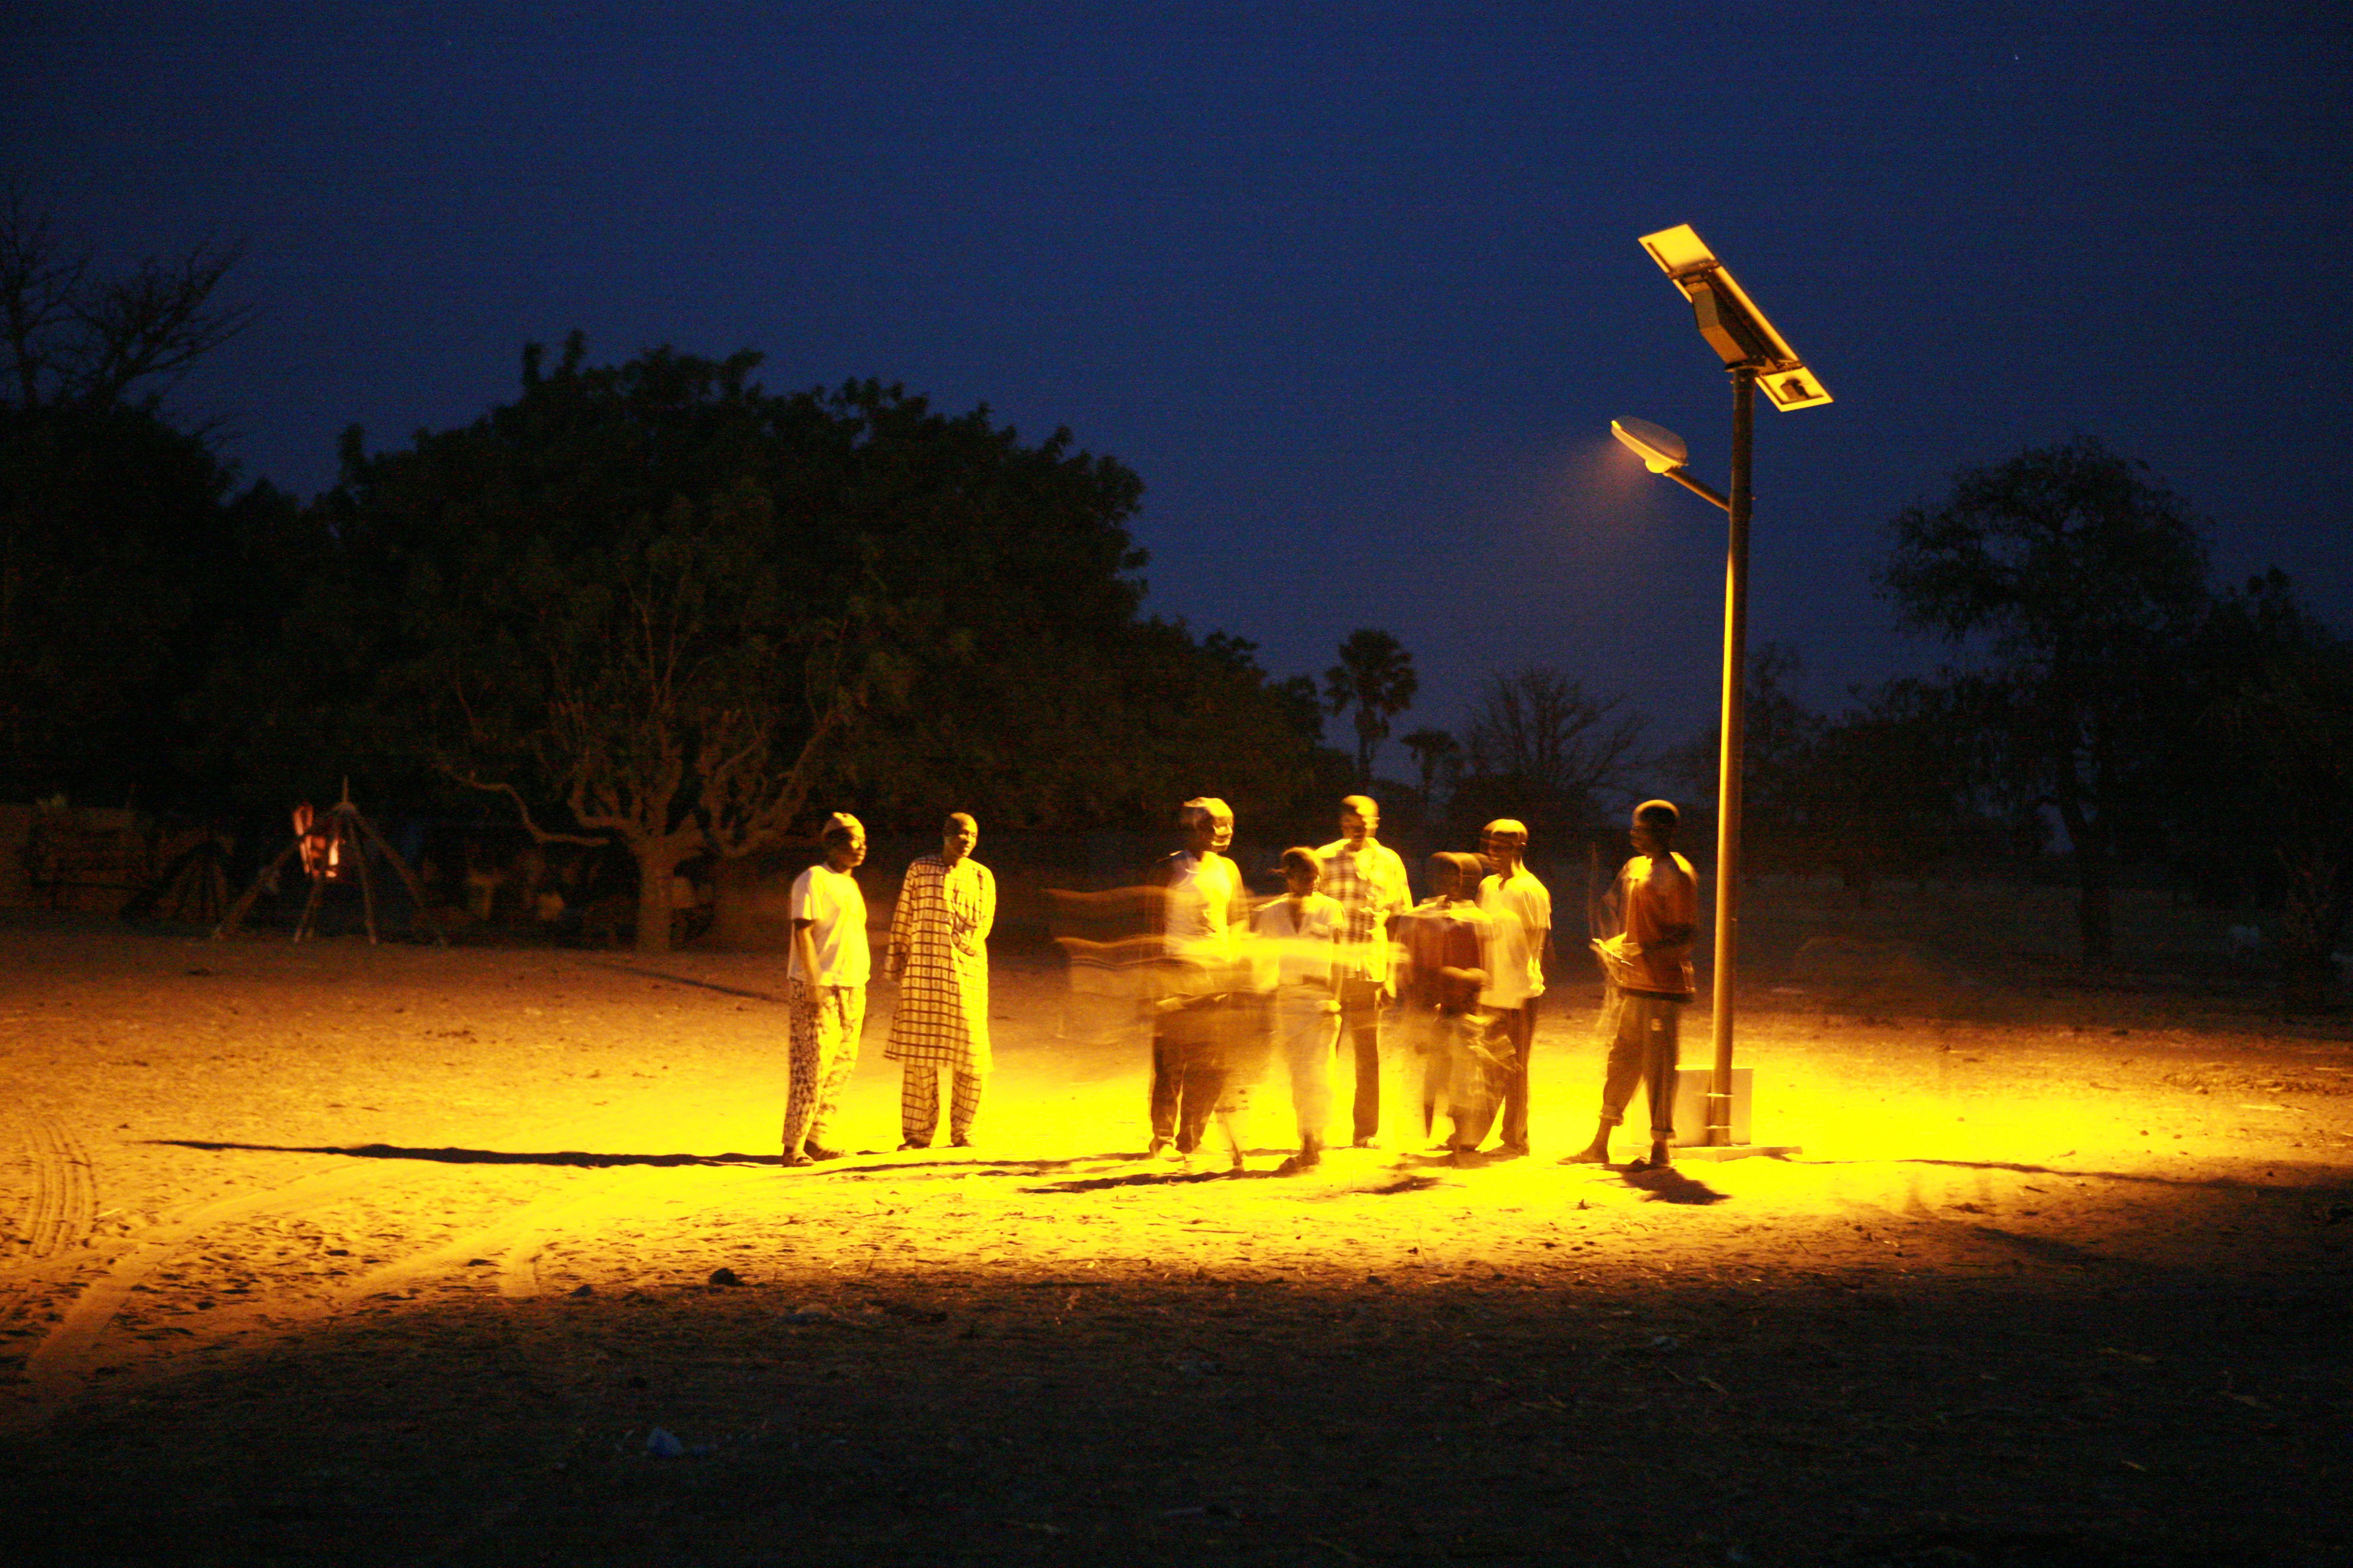 Street lighting through a solar-powered mini power grid in a village in Senegal